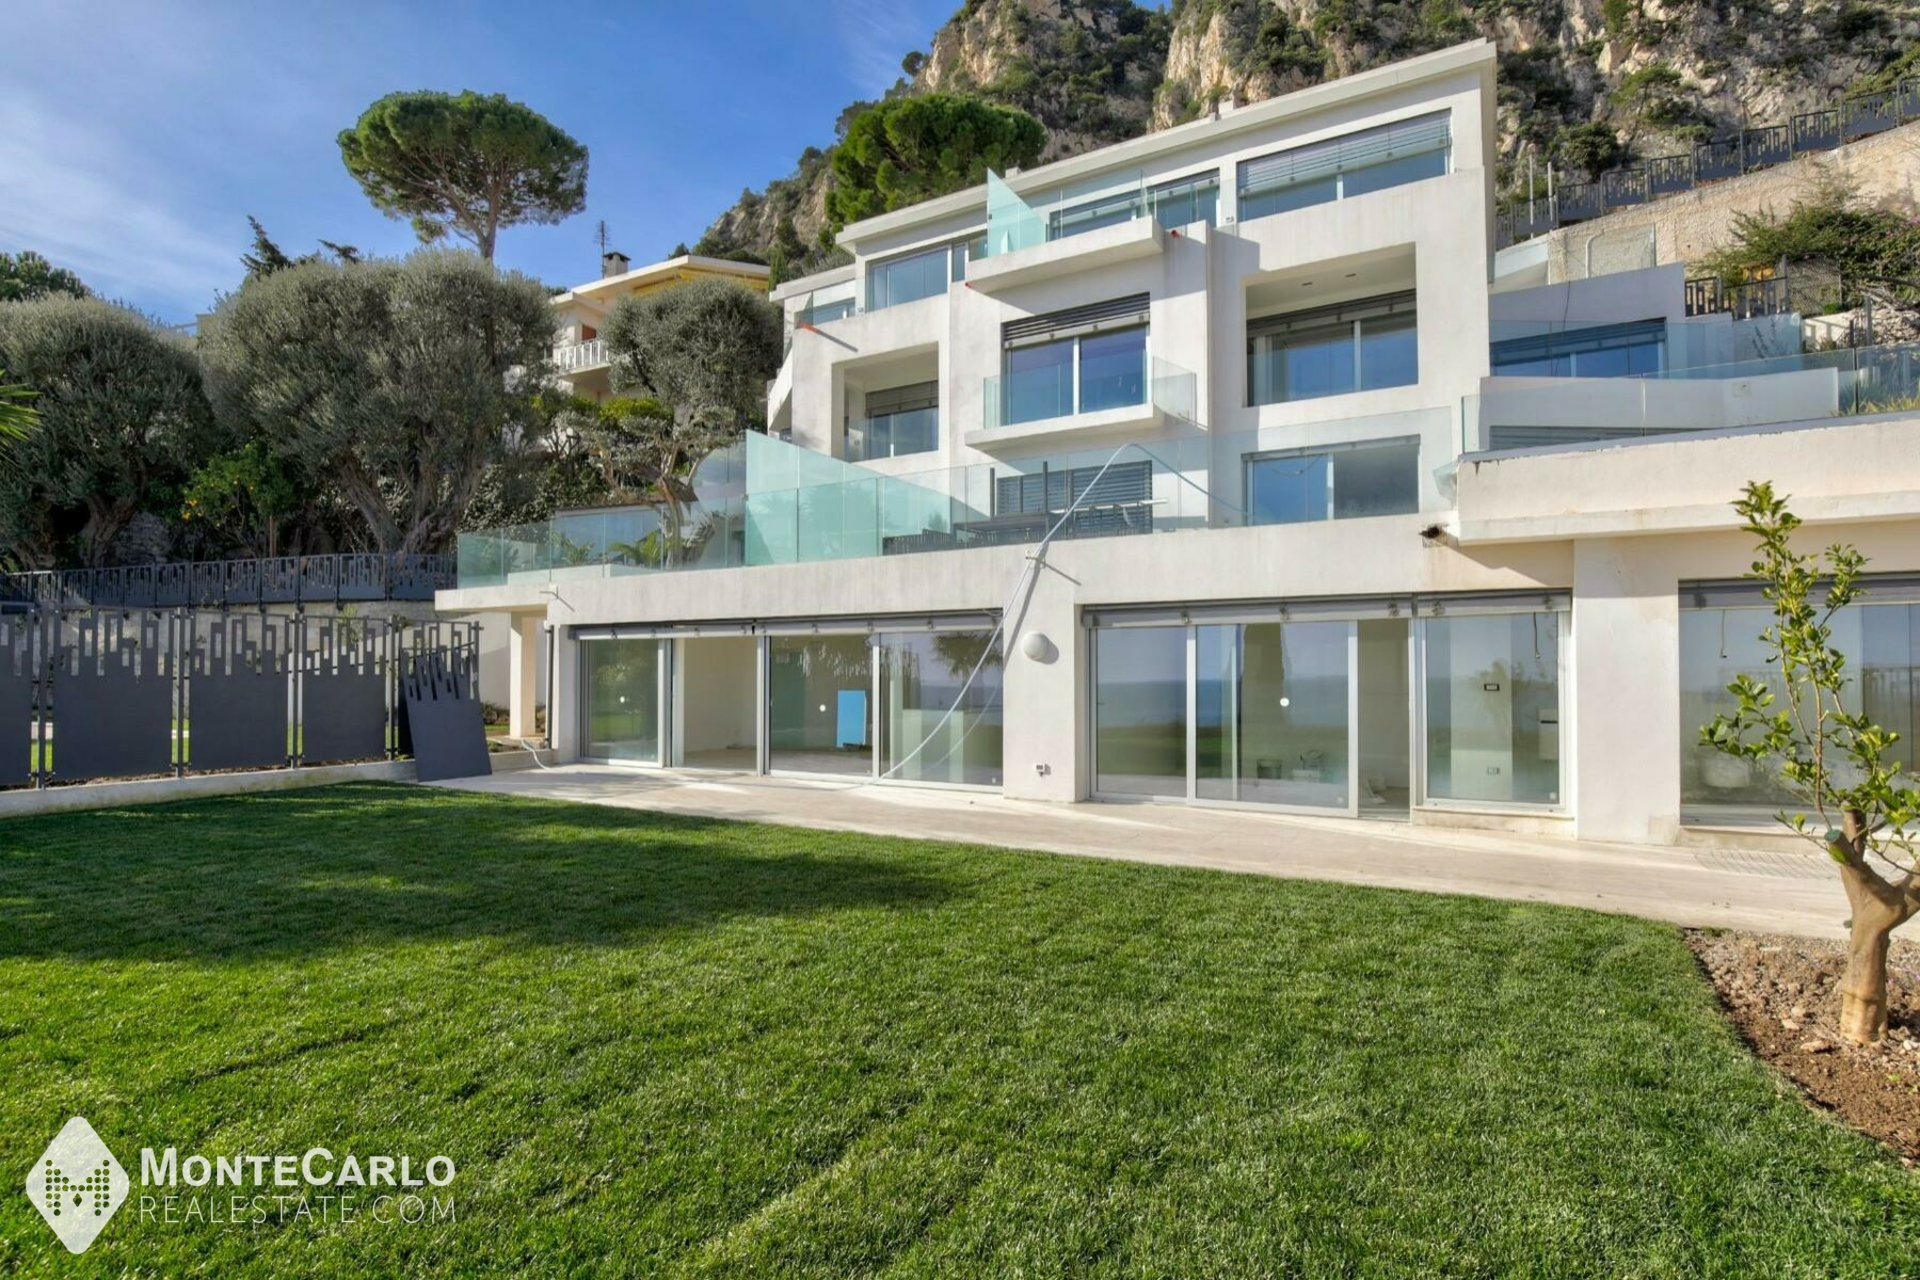 For sale Cap-d'Ail - Apartment / 2 rooms : 1 325 000 € | Monte-Carlo Real Estate [519V900557A]